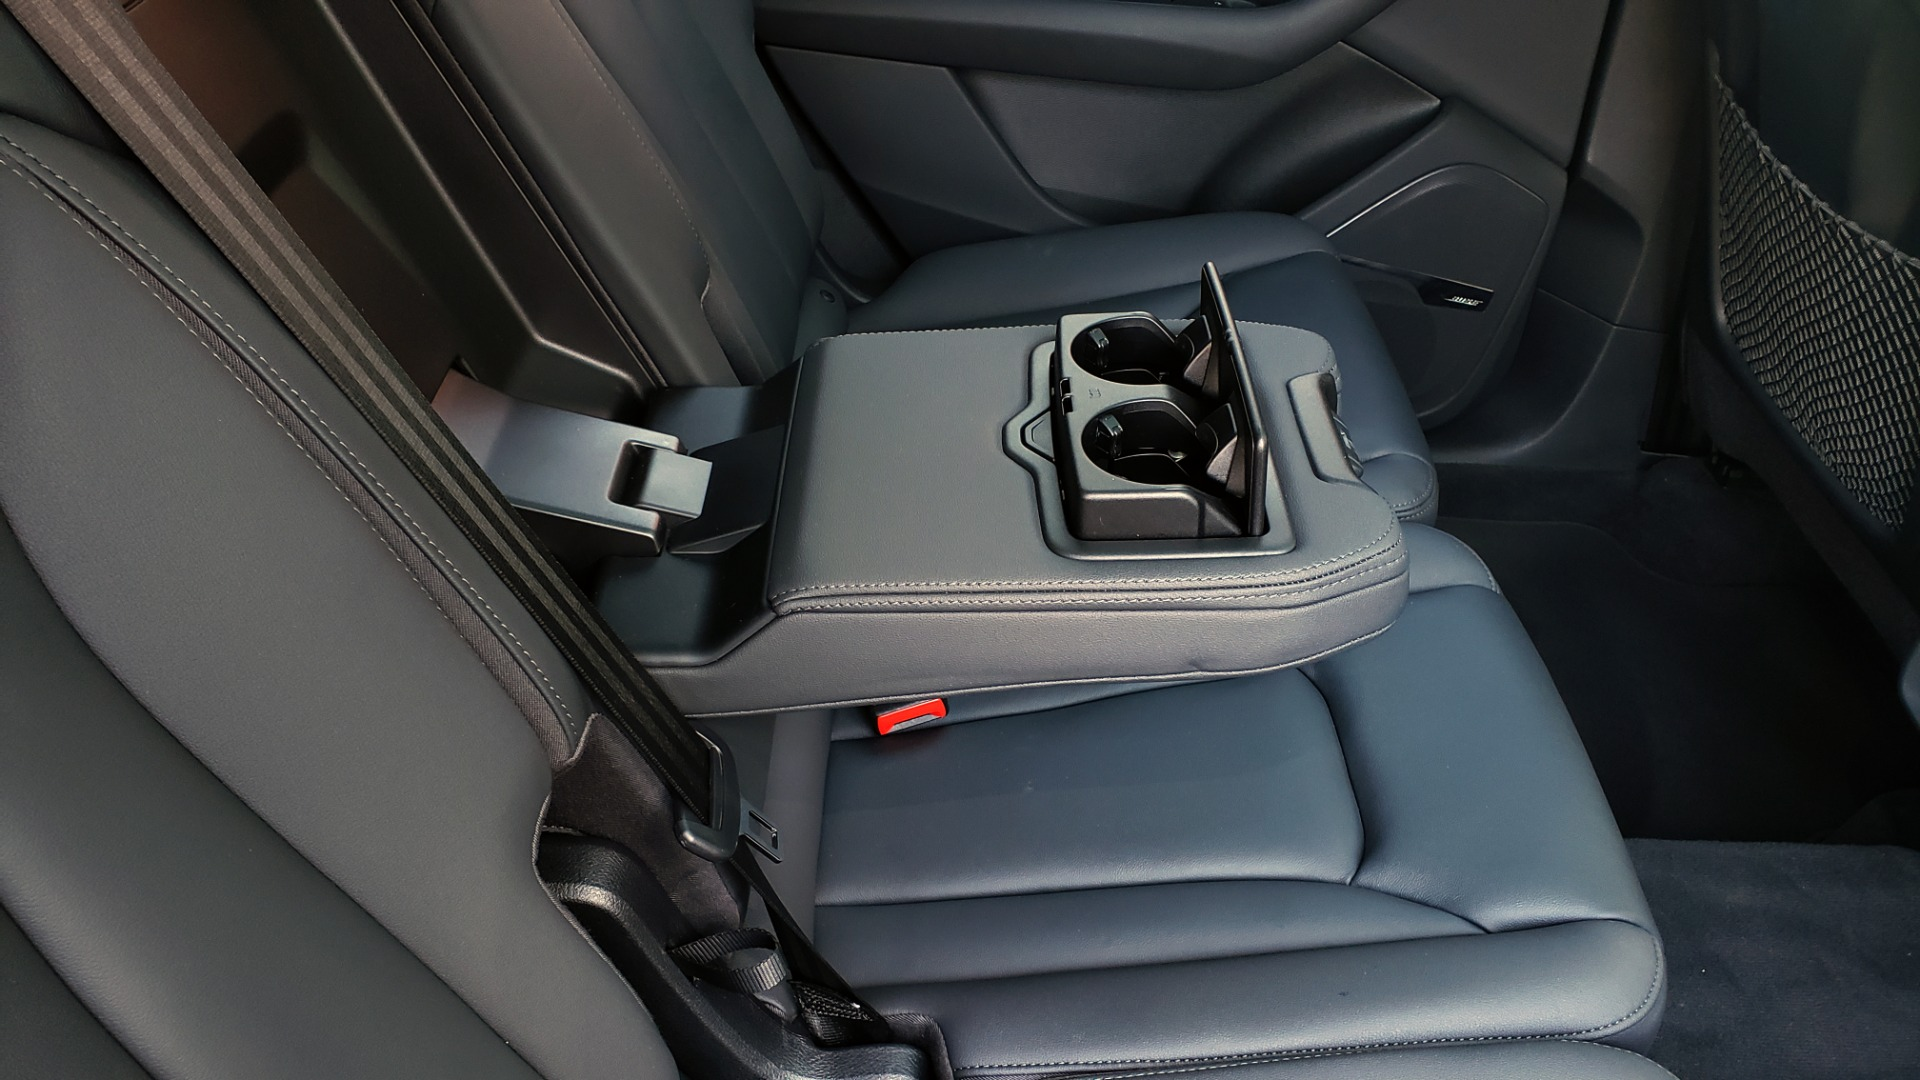 Used 2020 Audi Q7 PREMIUM PLUS / NAV / SUNROOF / 3-ROW / REARVIEW for sale $50,695 at Formula Imports in Charlotte NC 28227 81